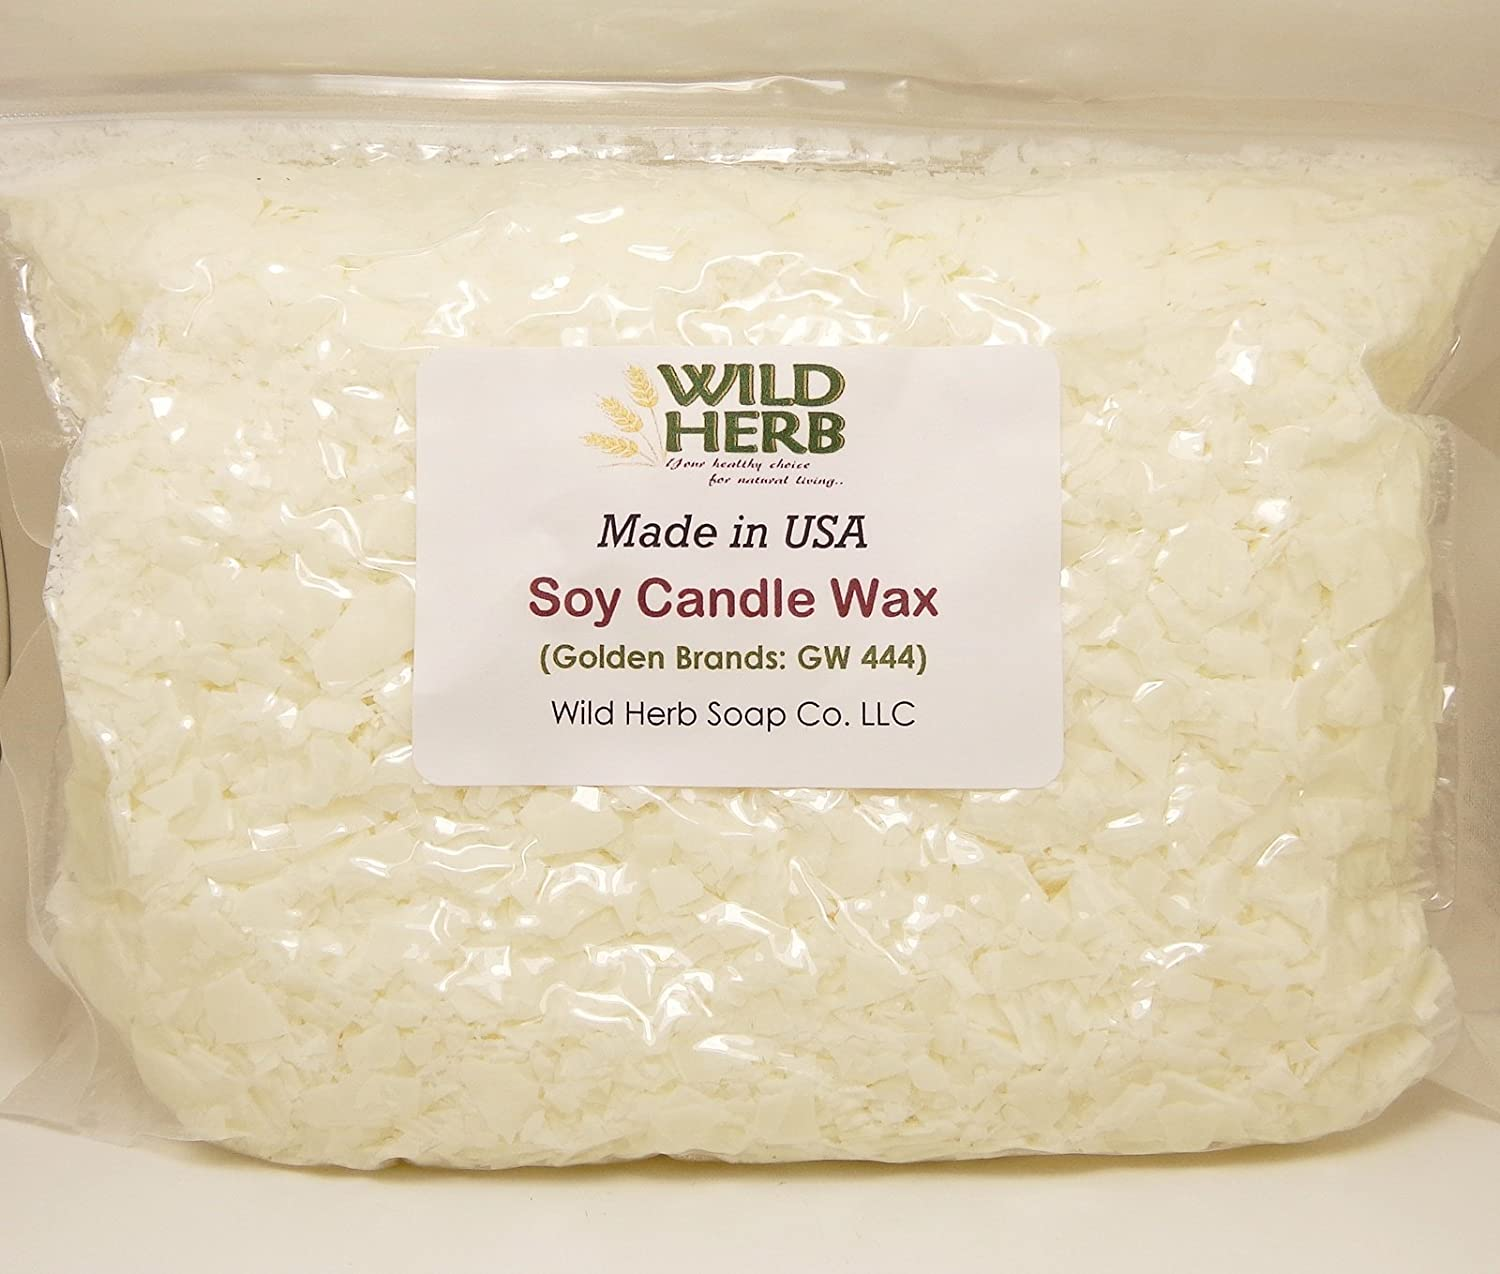 USA Made Bulk Soy Candle Wax Wild Herb Soap Co